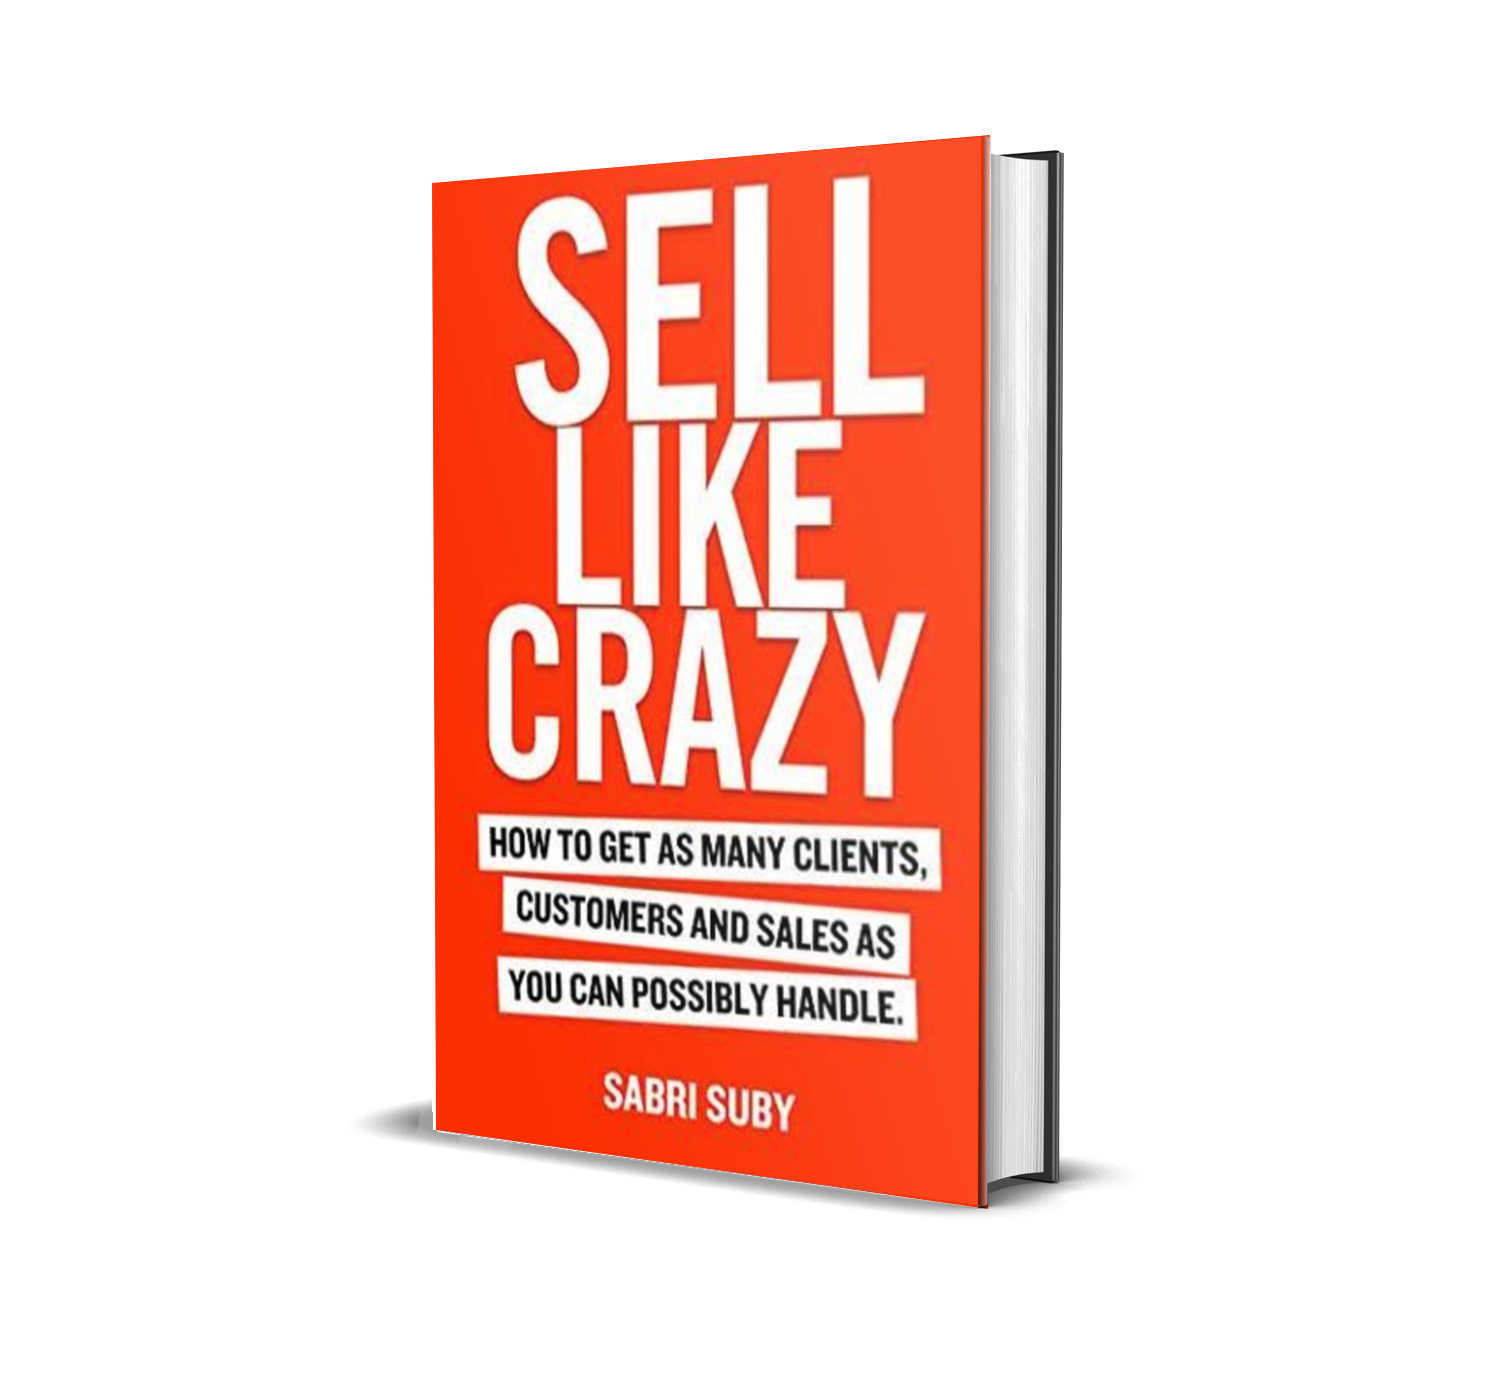 Sell like crazy- Sabri Suby